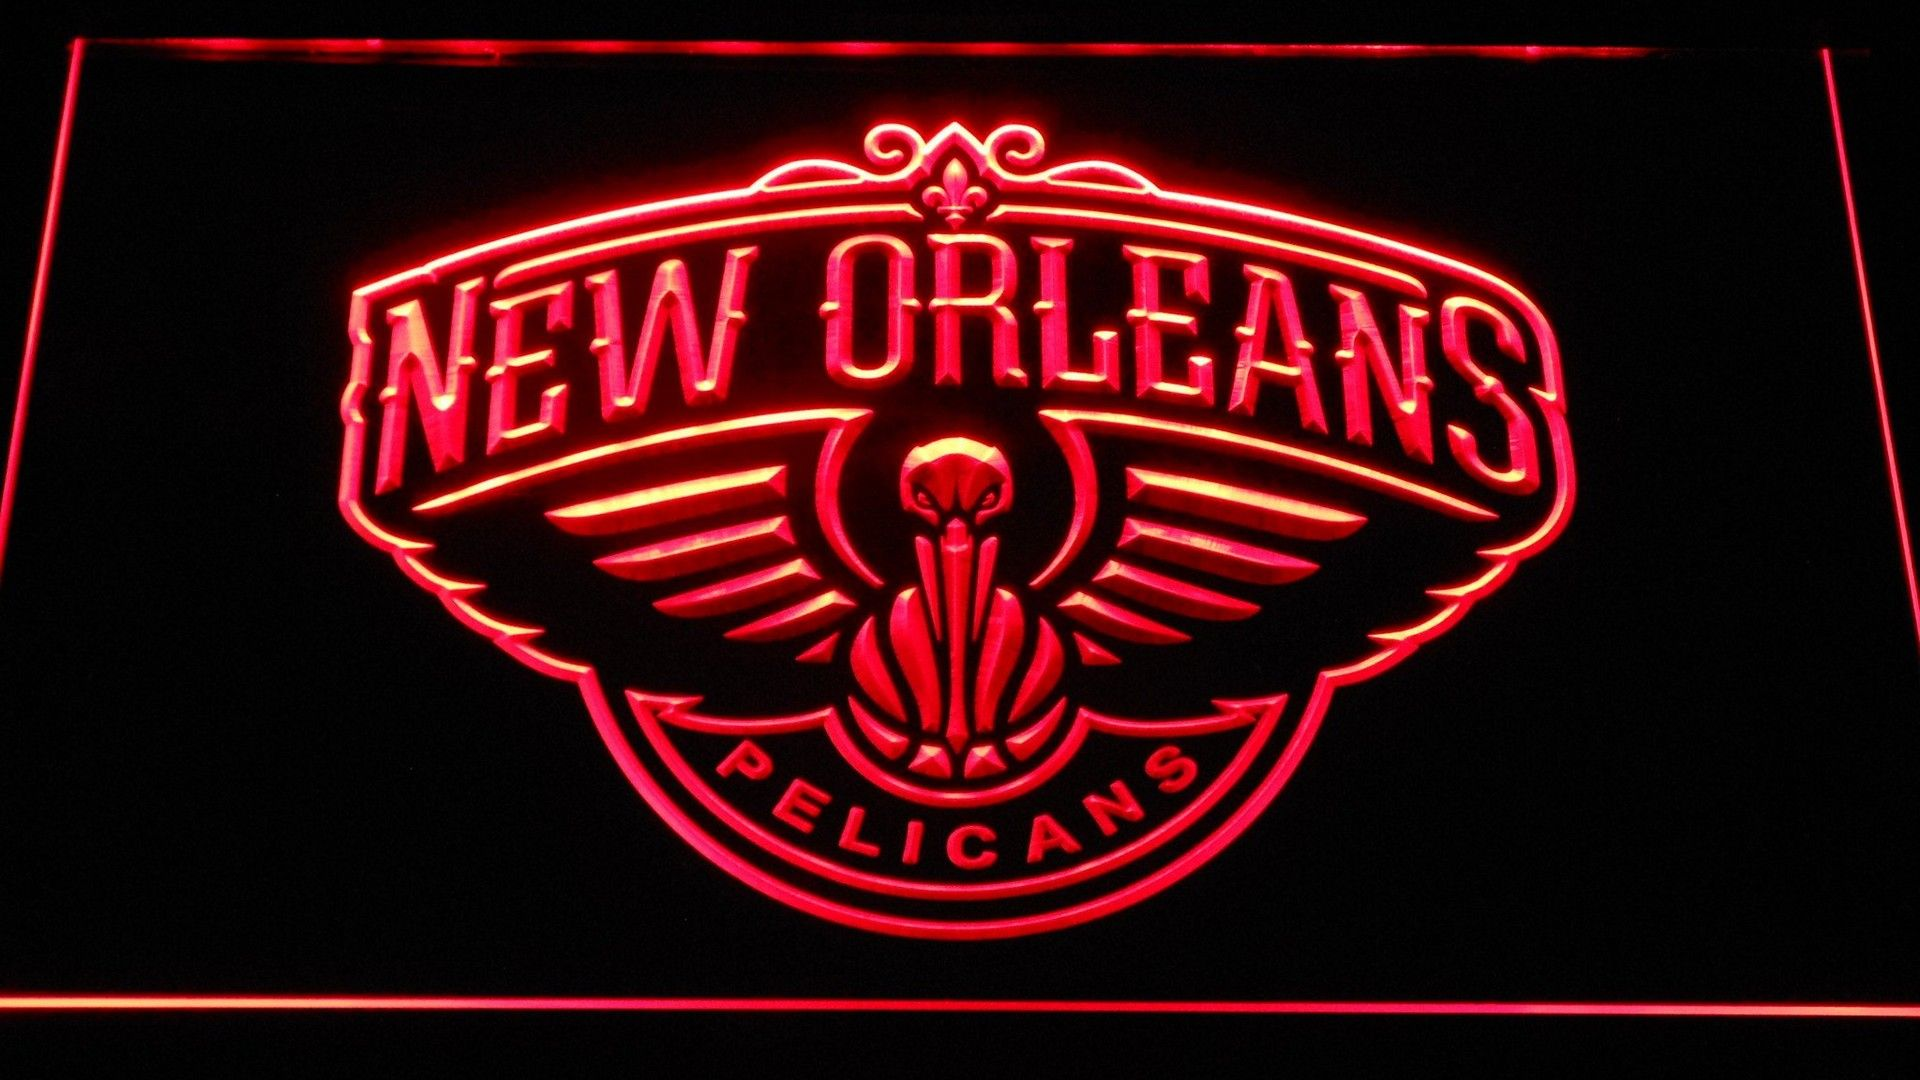 Wallpapers Hd New Orleans Pelicans Led Neon Signs Neon